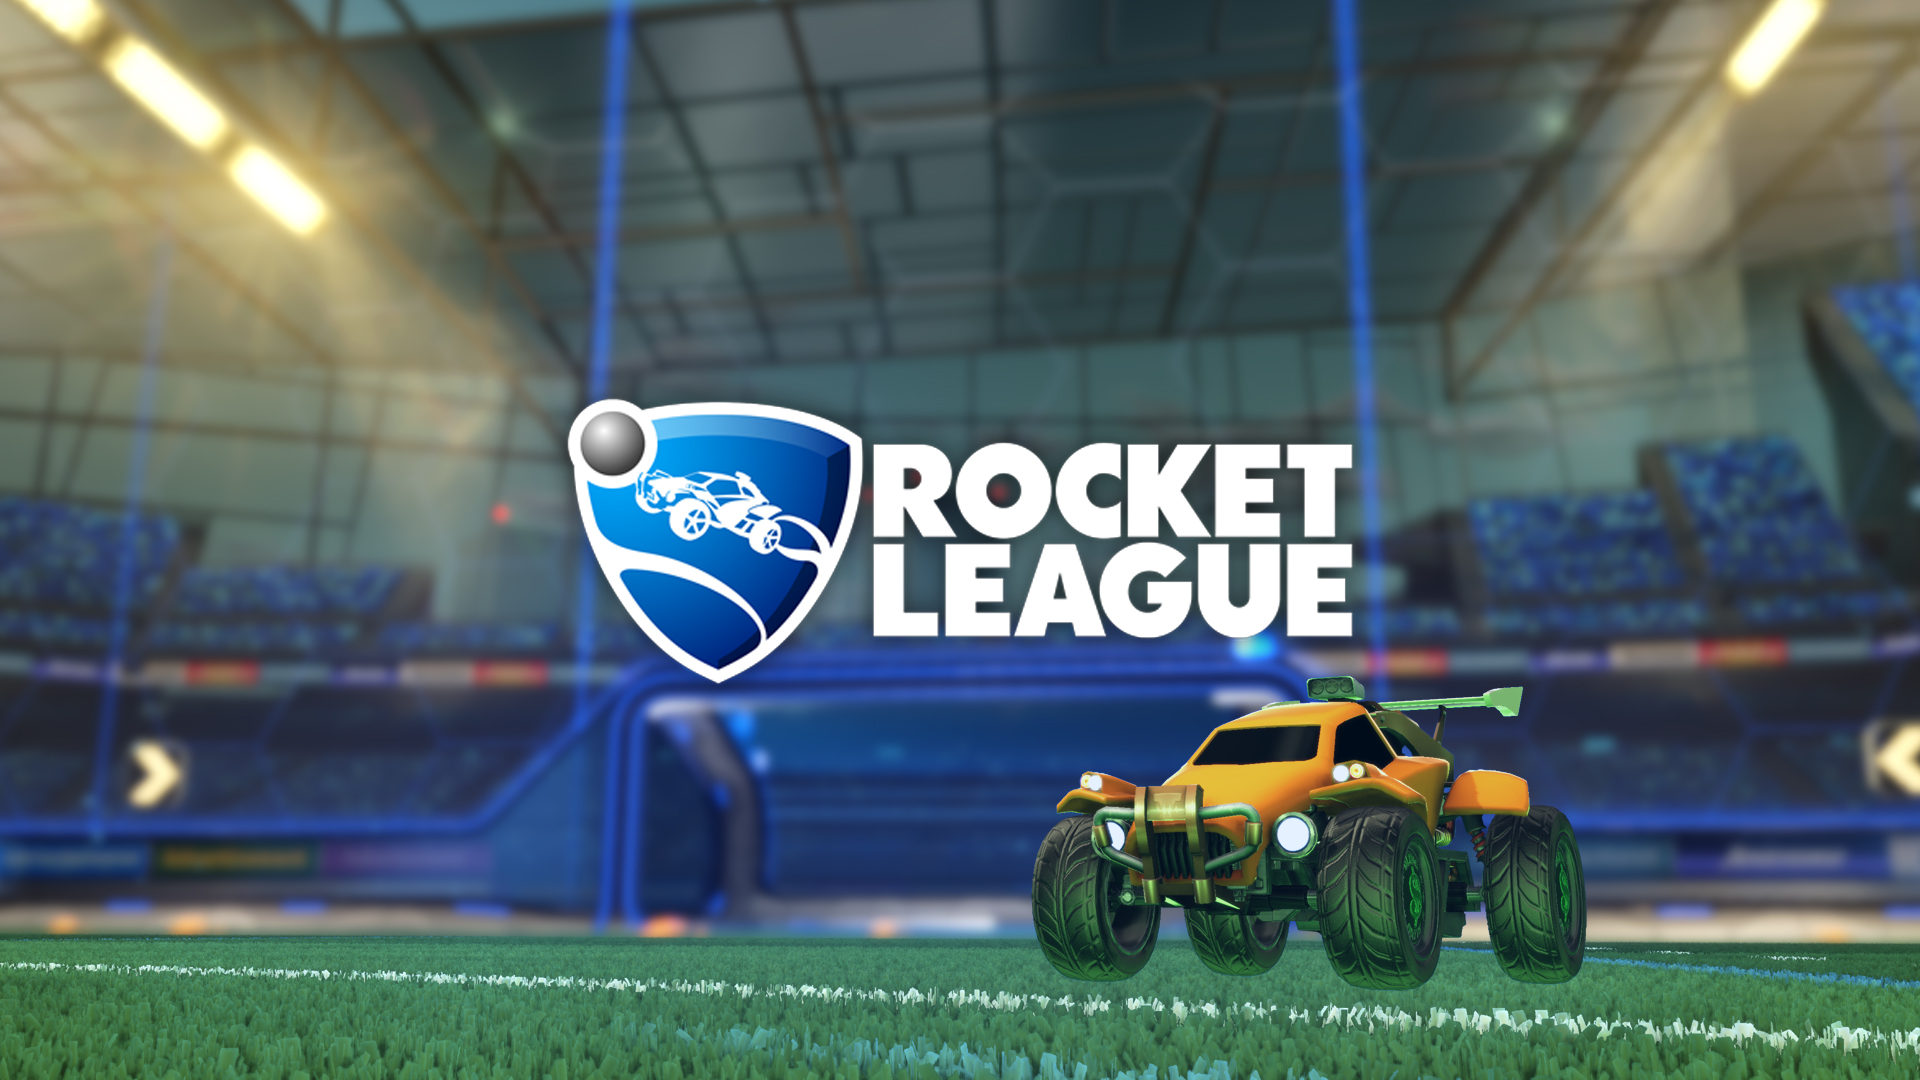 rocket league game hd wallpaper 61720